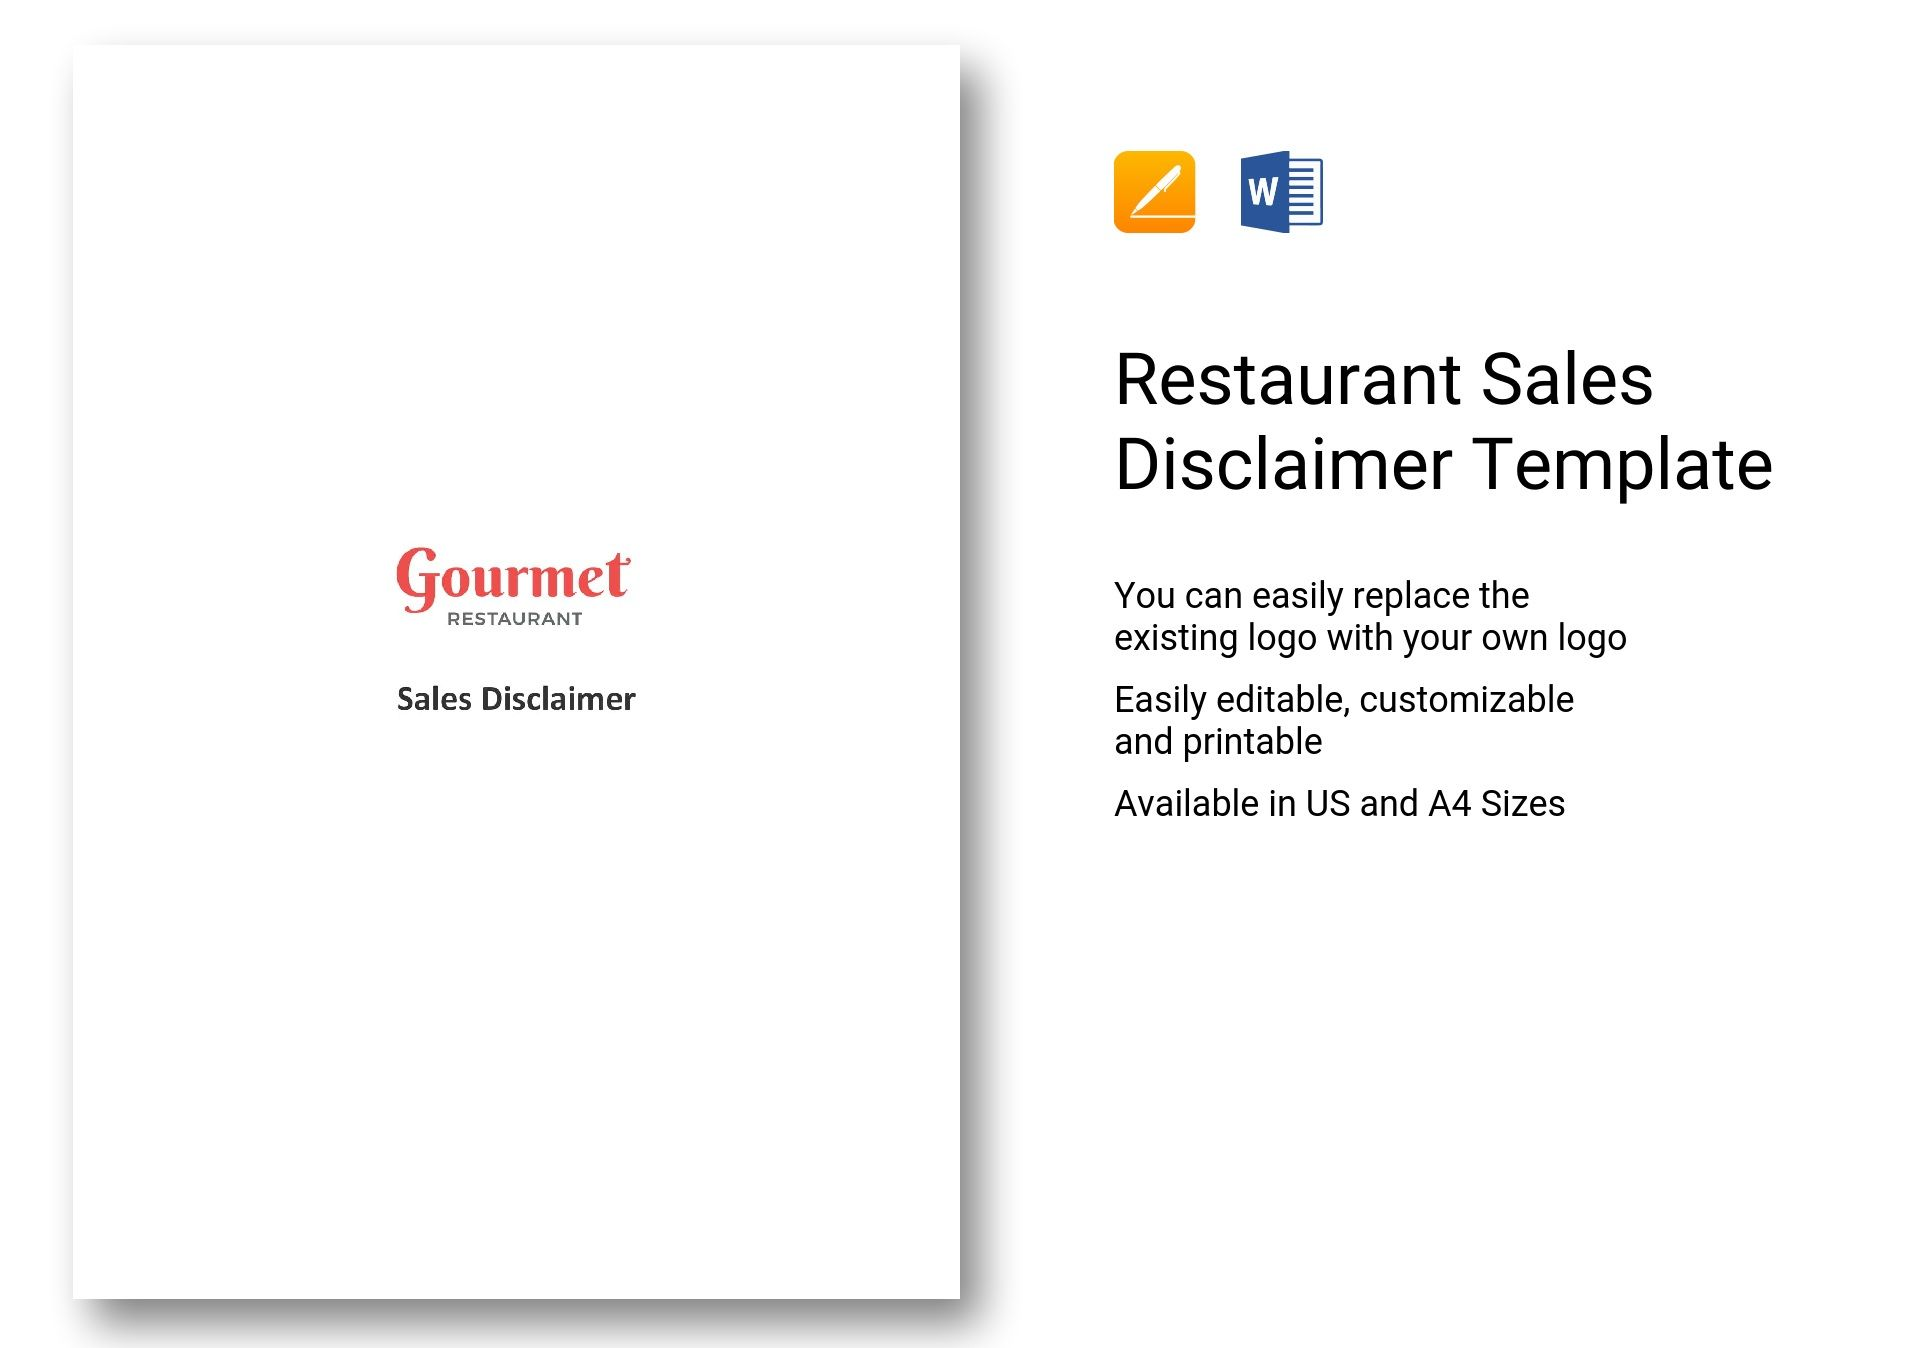 Restaurant Sales Disclaimer